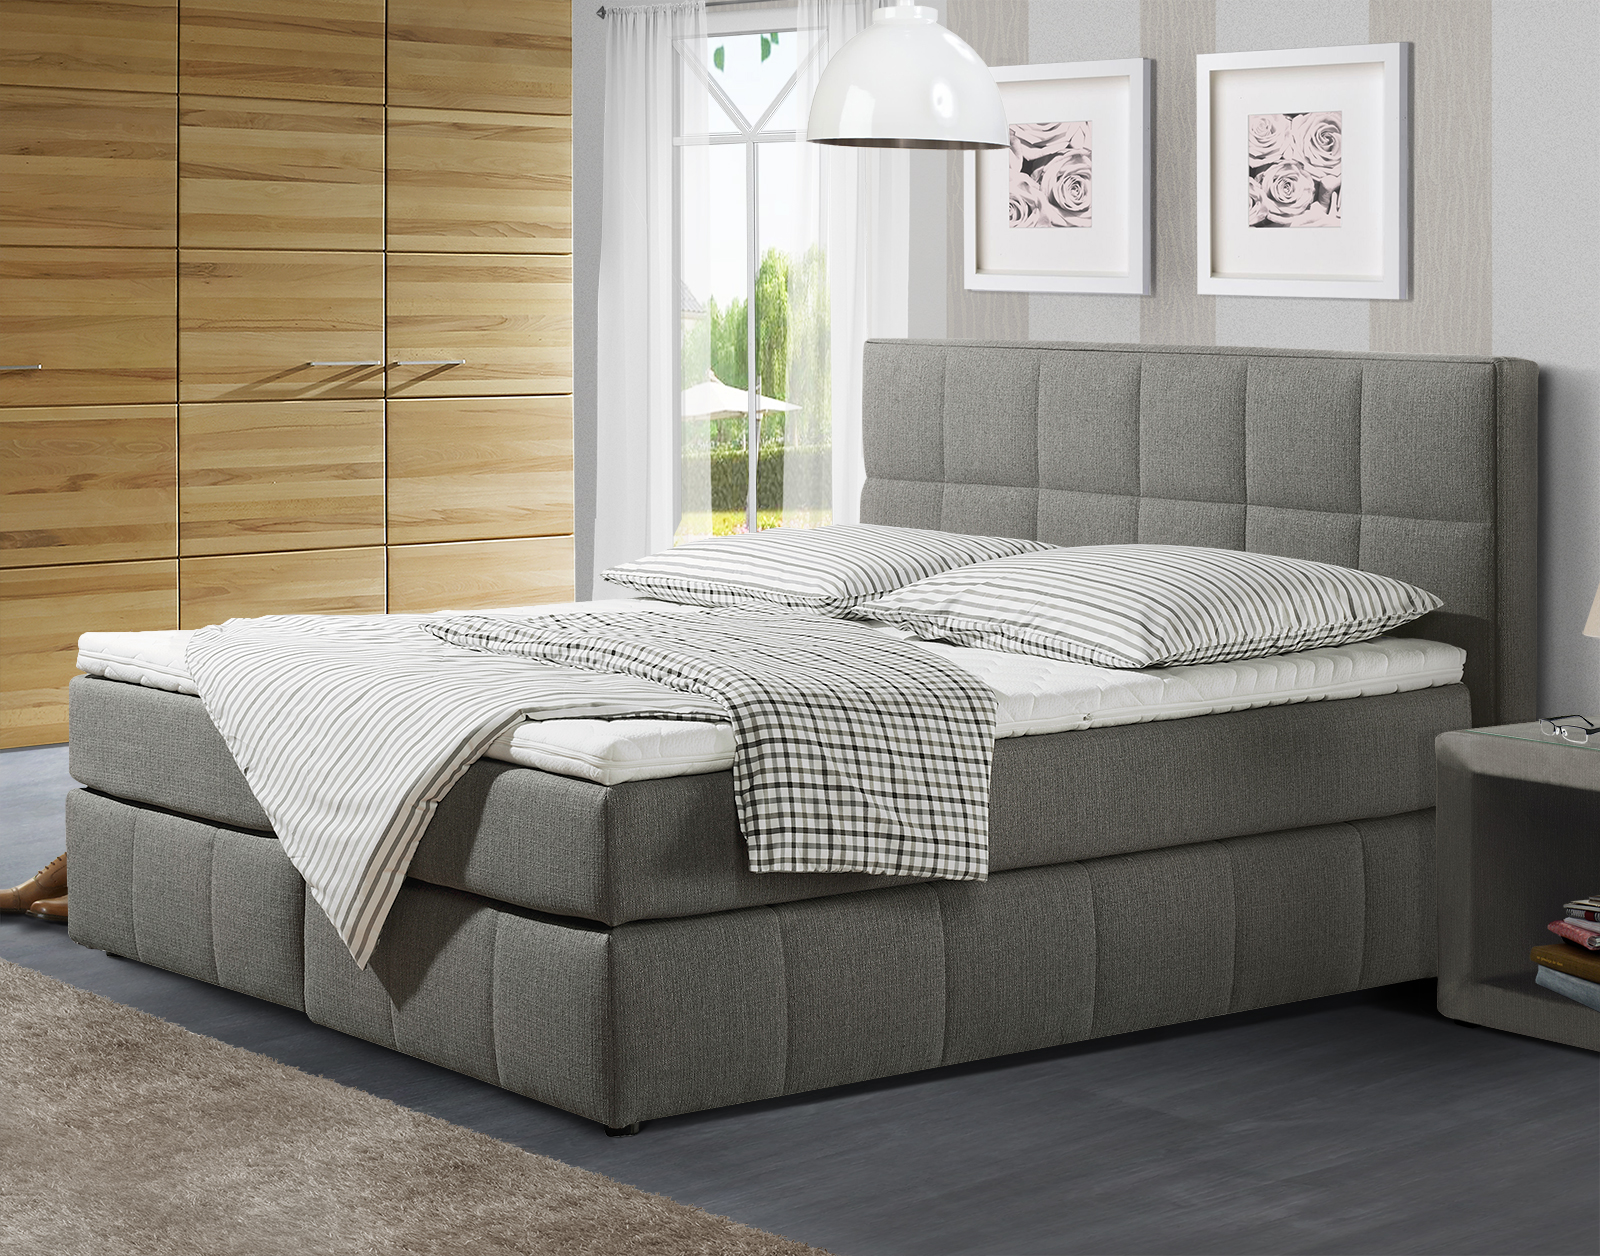 Boxspringbett Modern polsterbett on feedyeti com